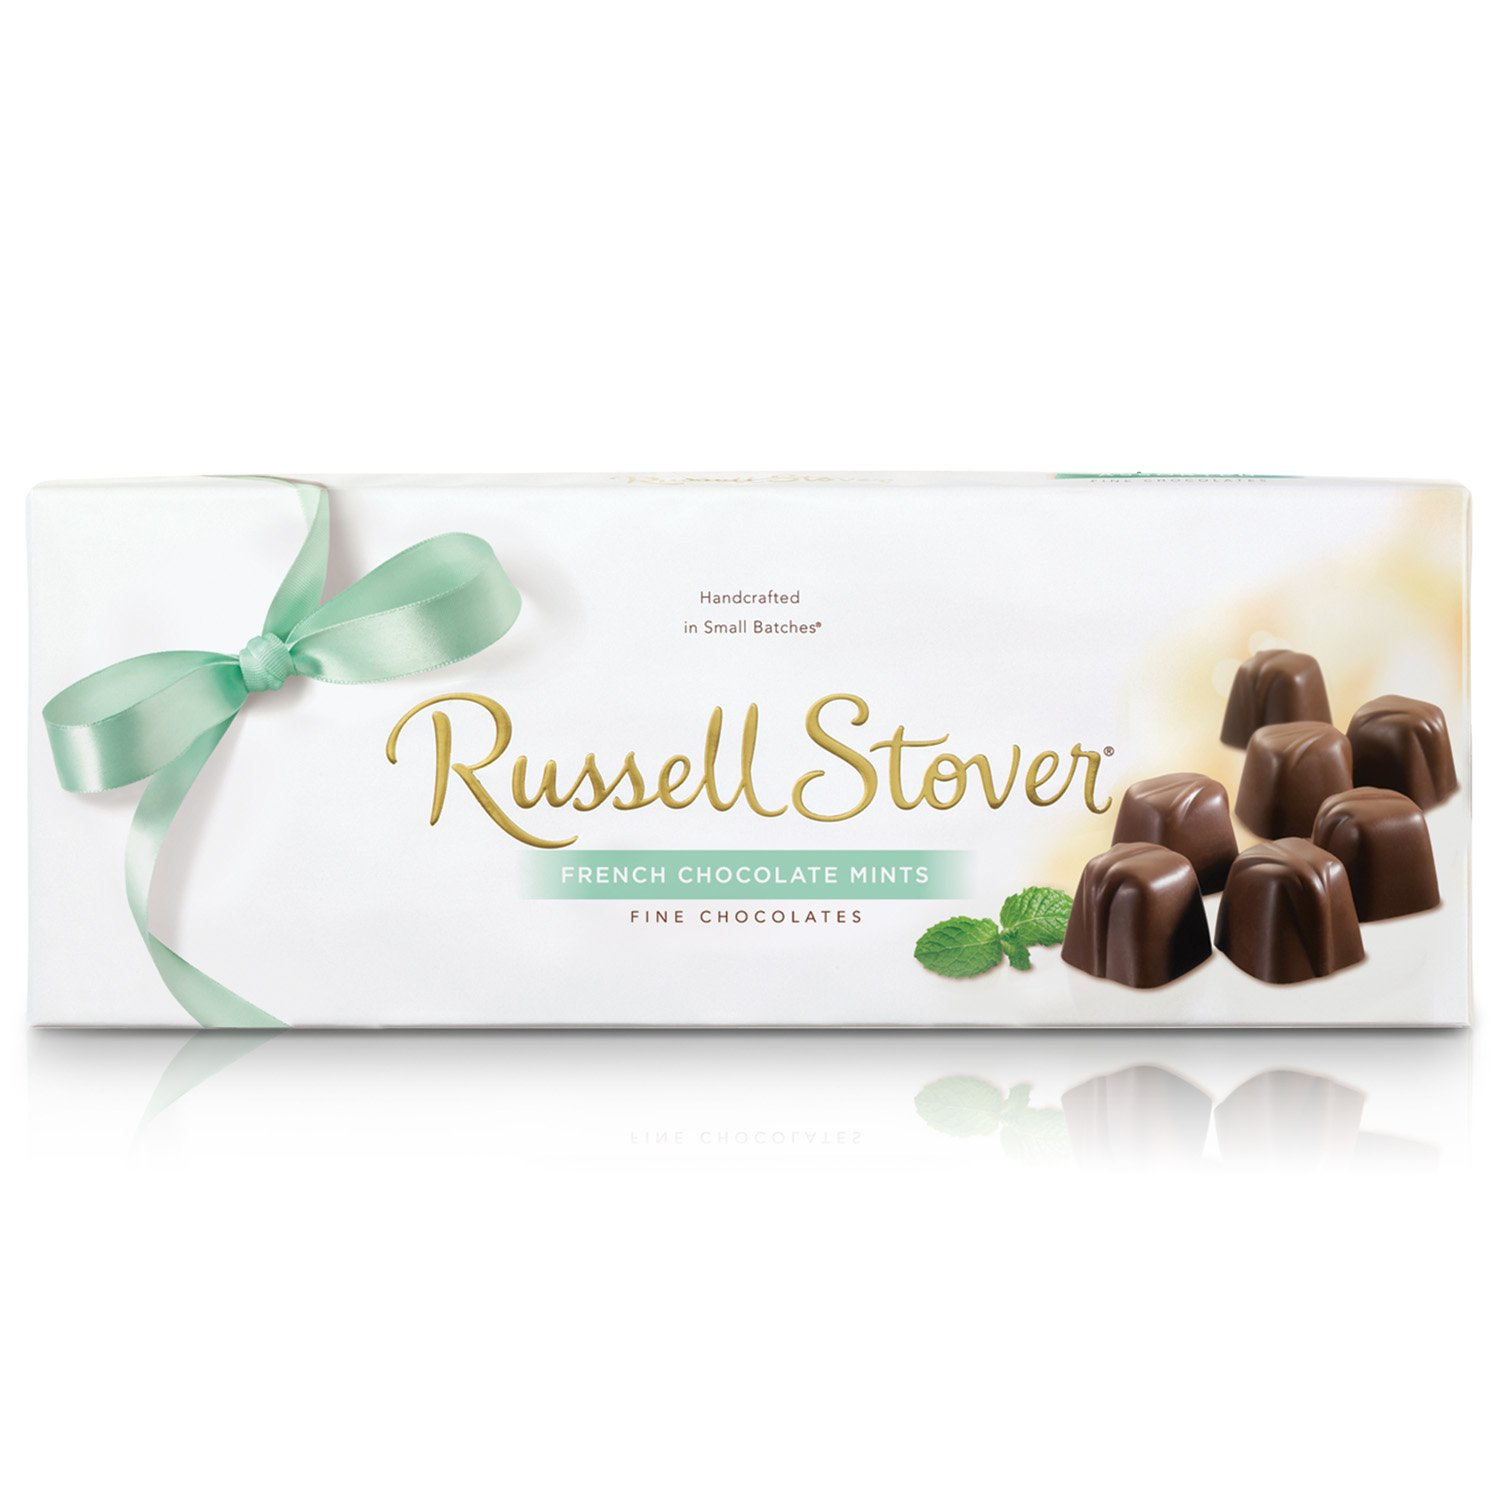 Russell Stover French Chocolate Mints, 10 oz. Box (6 Count) by Russell Stover